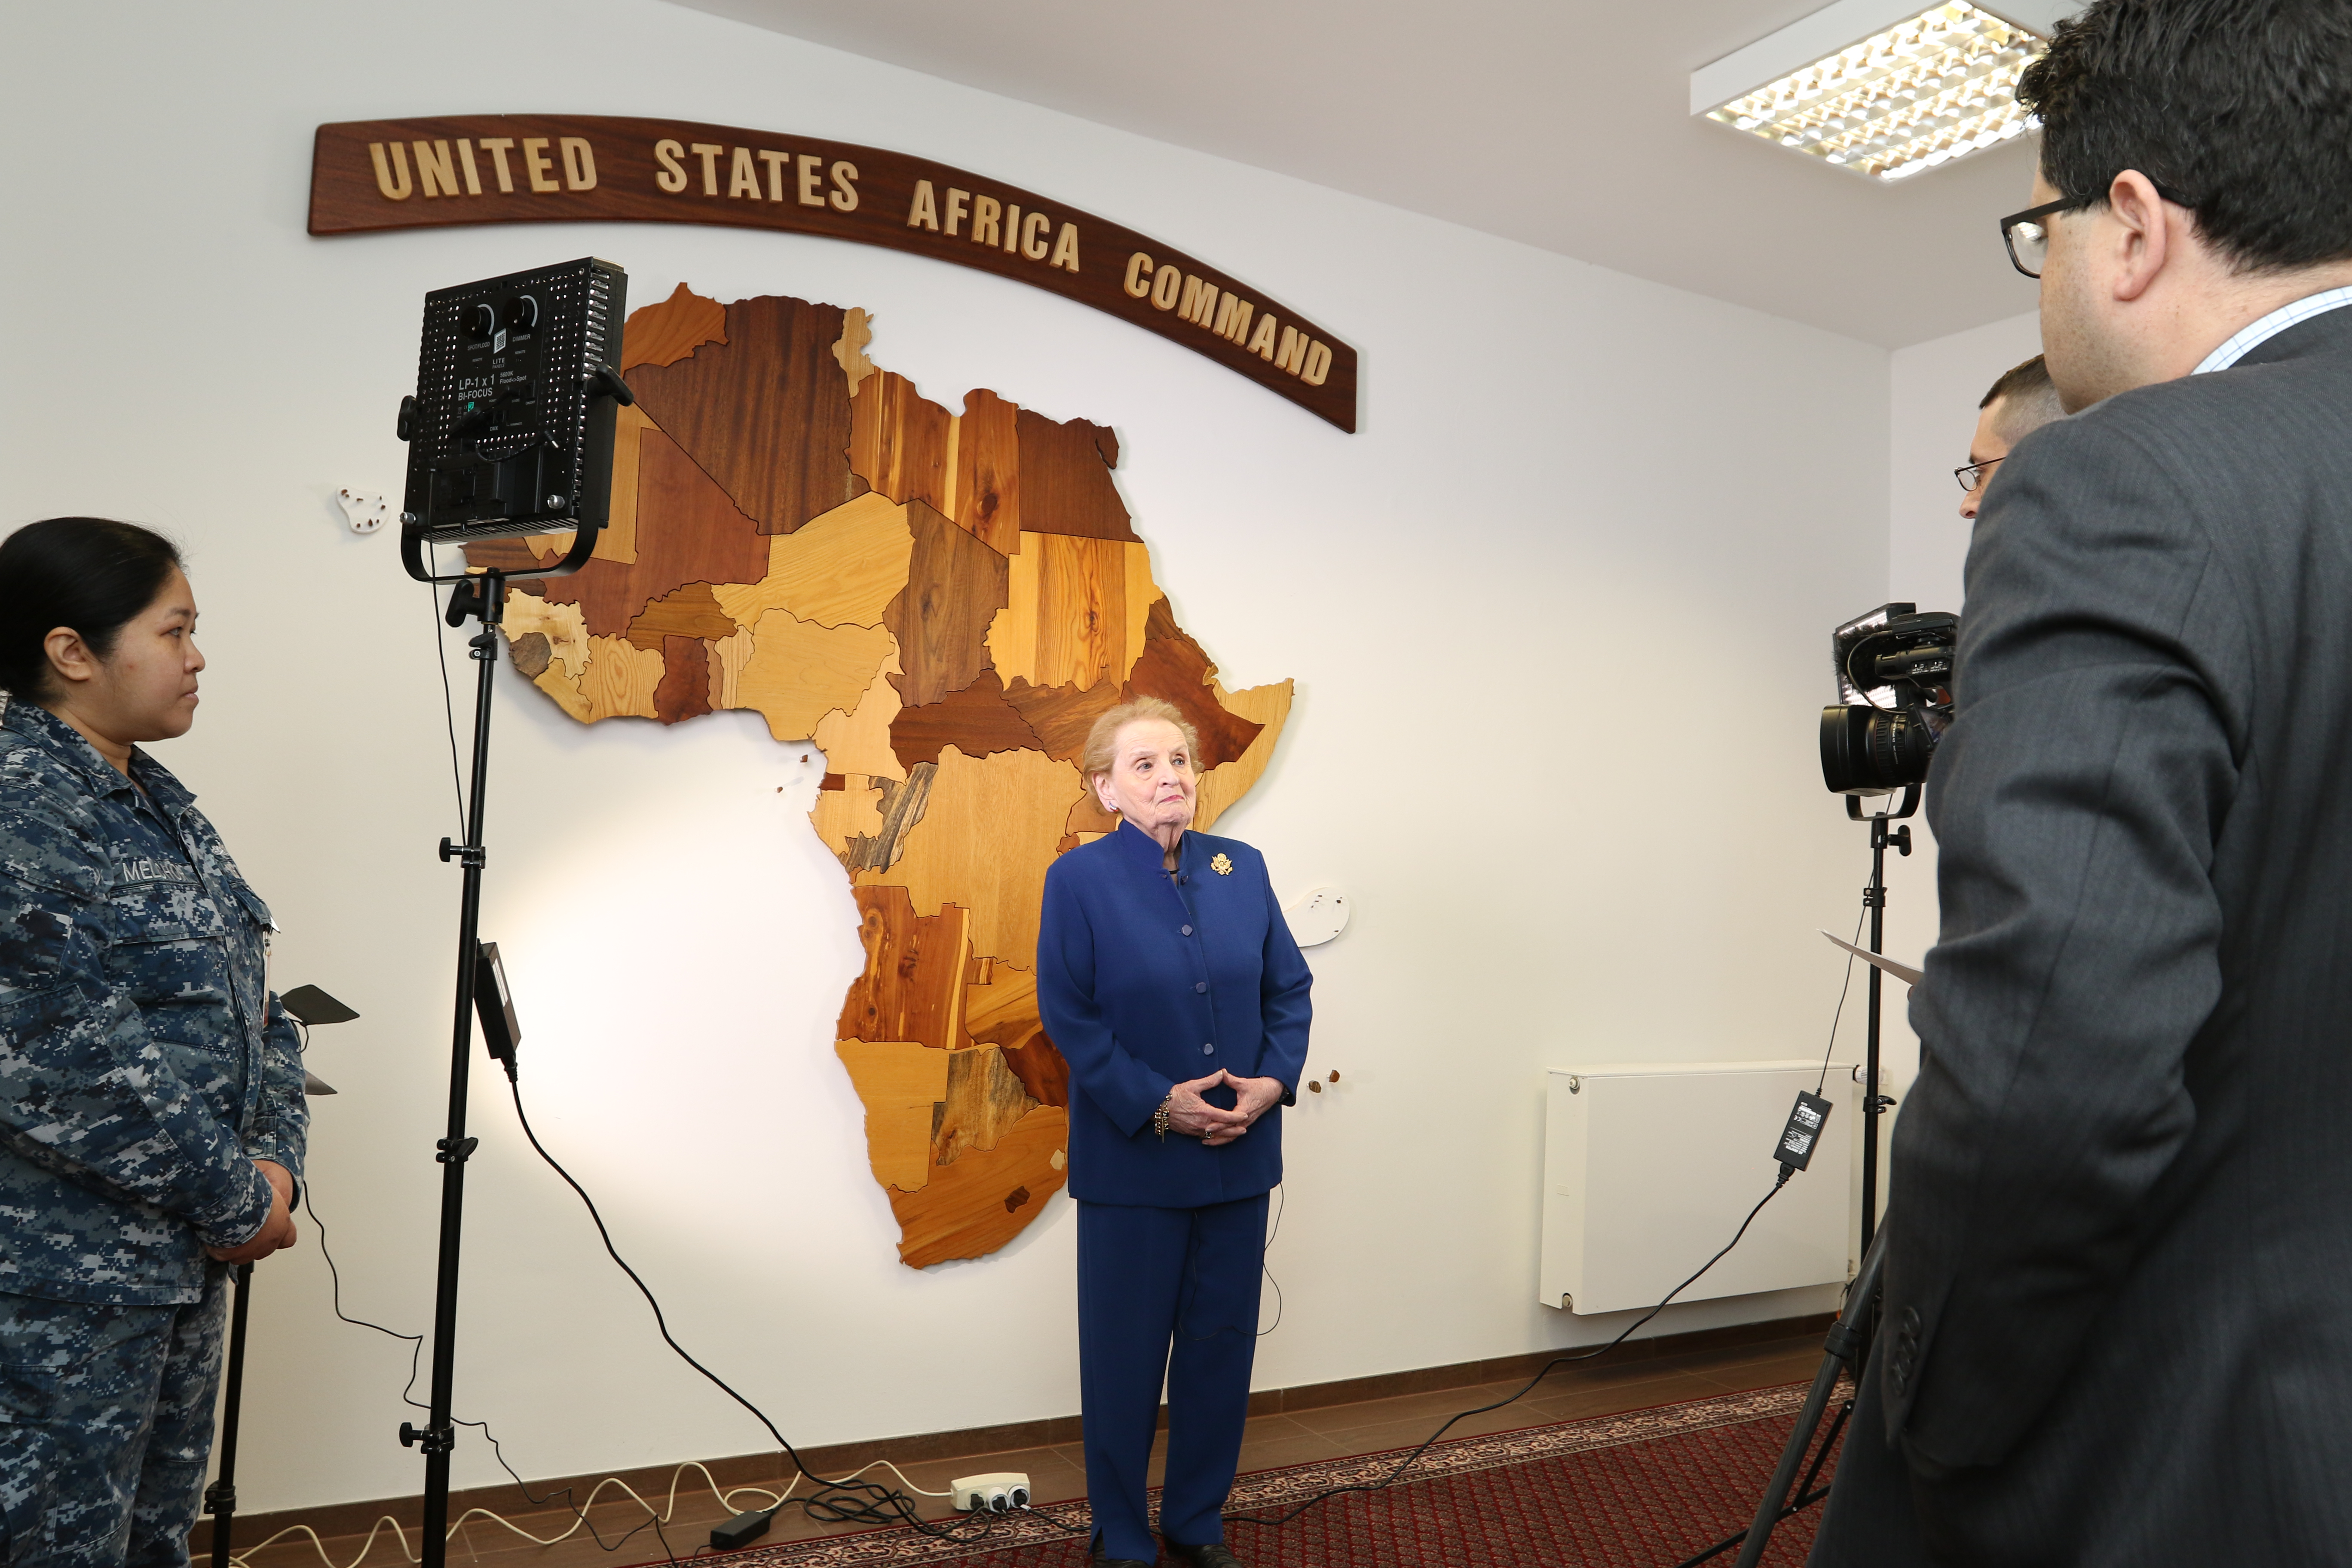 AFN interviews former Secretary of State Madeleine Albright during her visit to AFRICOM, Feb. 6, 2017. (USAFRICOM photo by Brenda Law/Released)